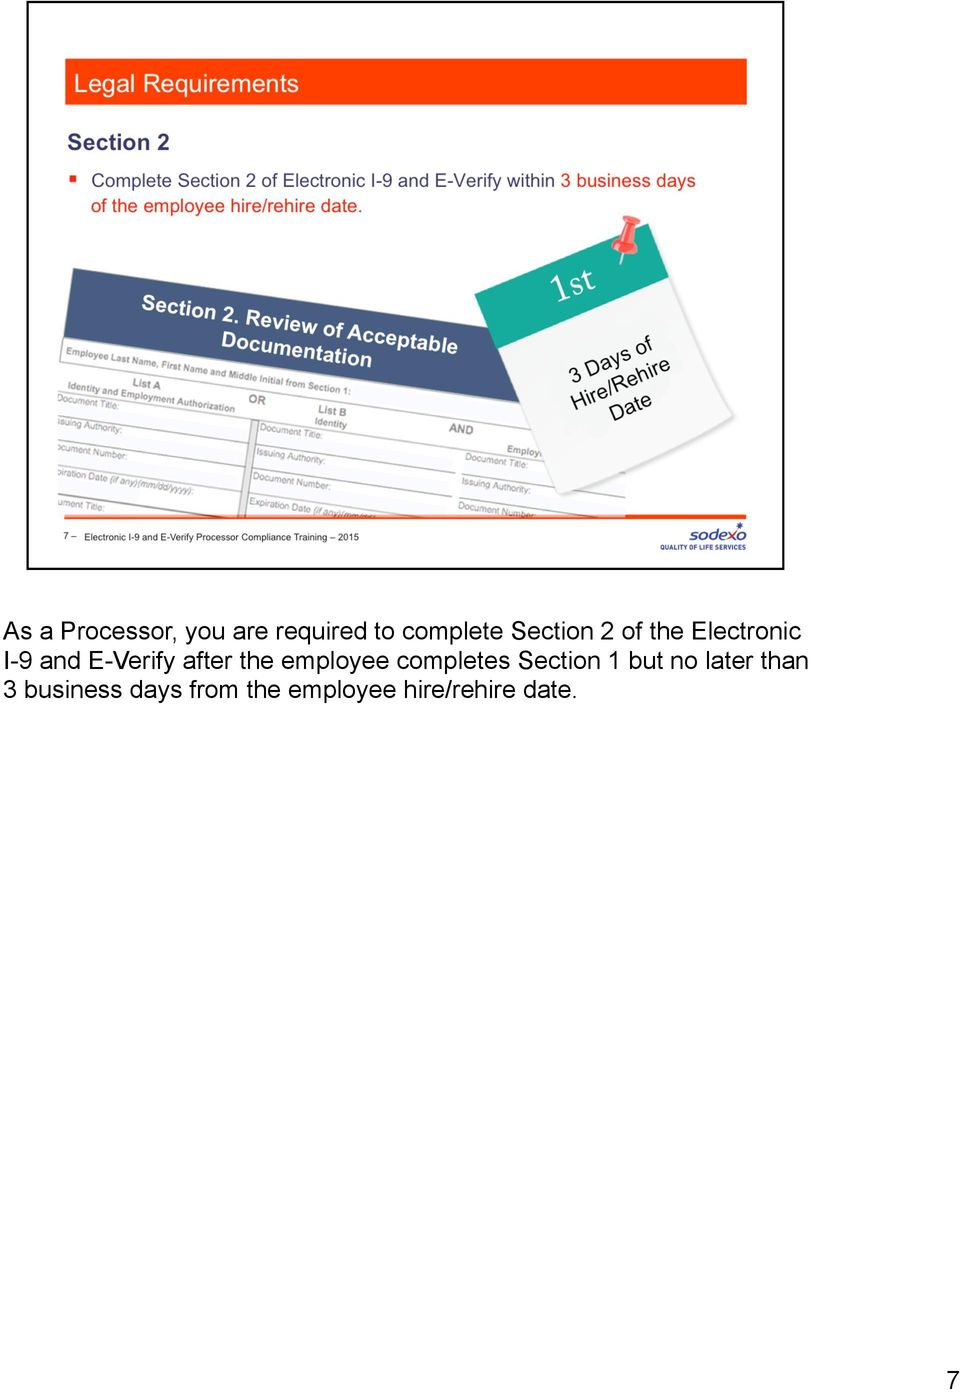 Payroll training adp payroll training pictures of adp payroll training fandeluxe Choice Image